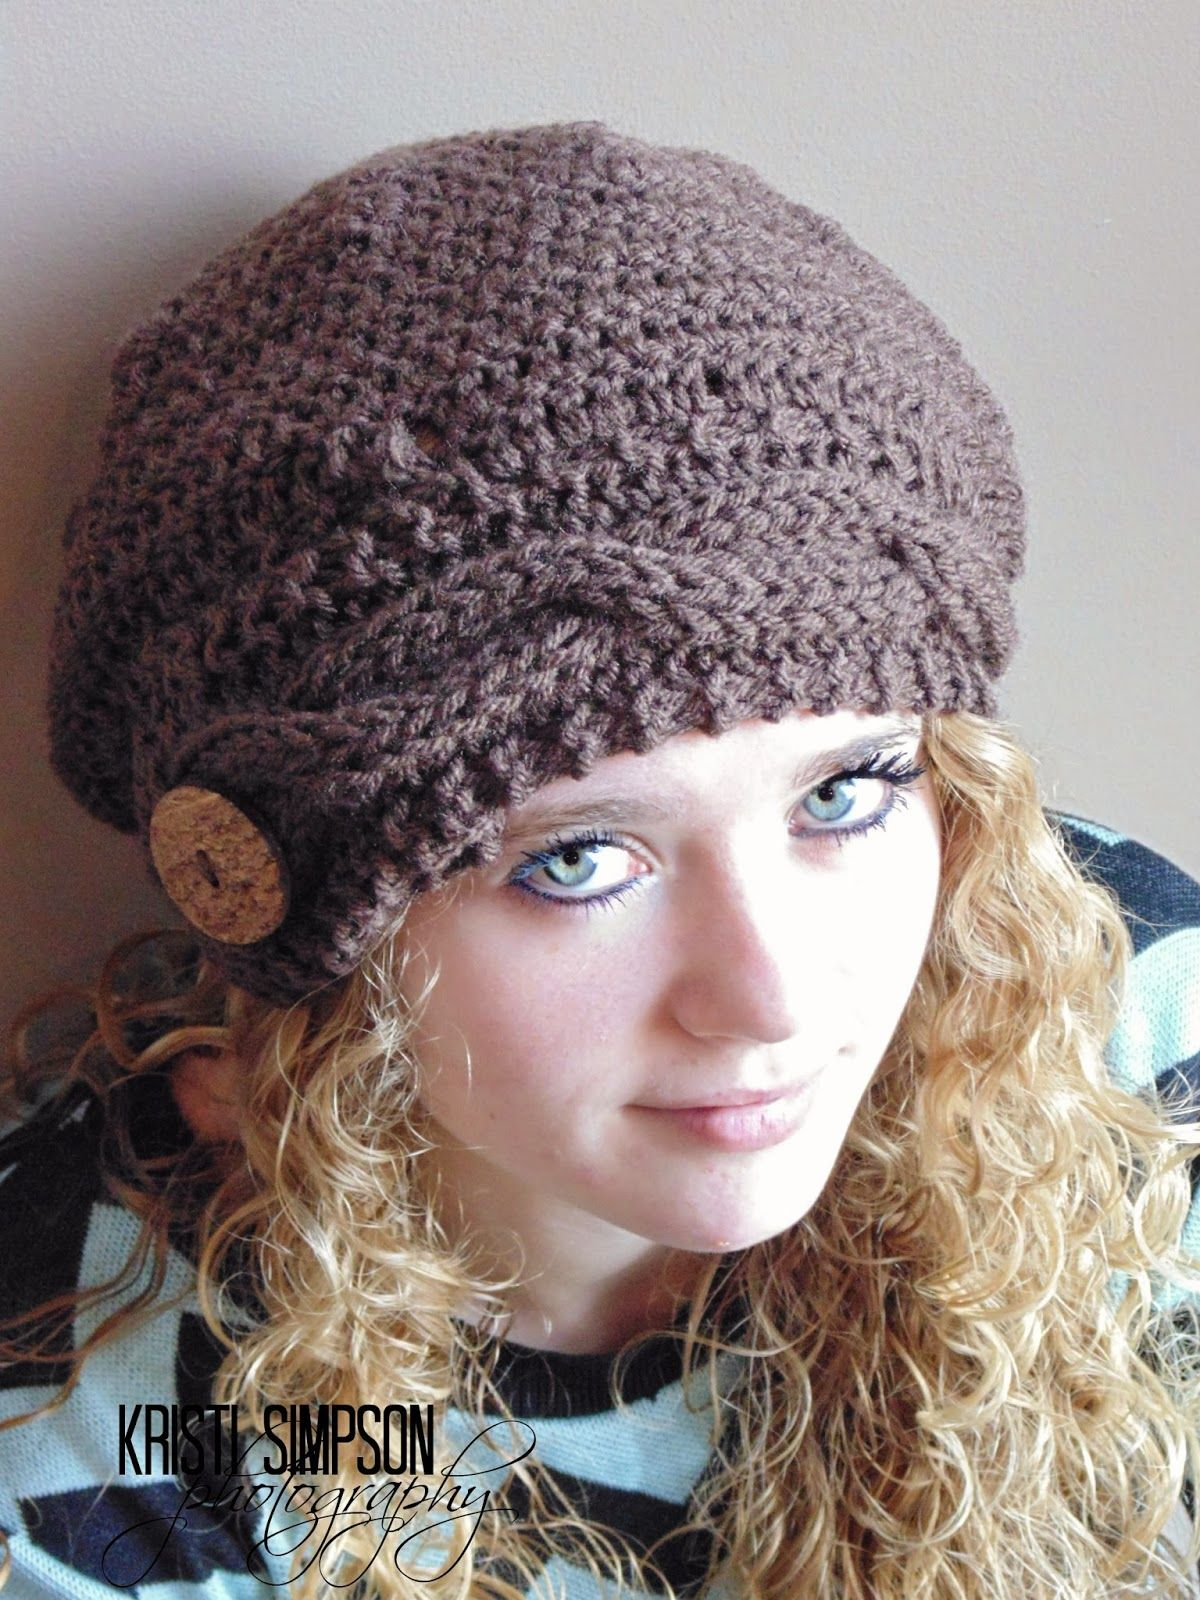 Free slouchy hat pattern knit pattern crochet pattern www free slouchy hat pattern knit pattern crochet pattern rakjpatterns bankloansurffo Image collections